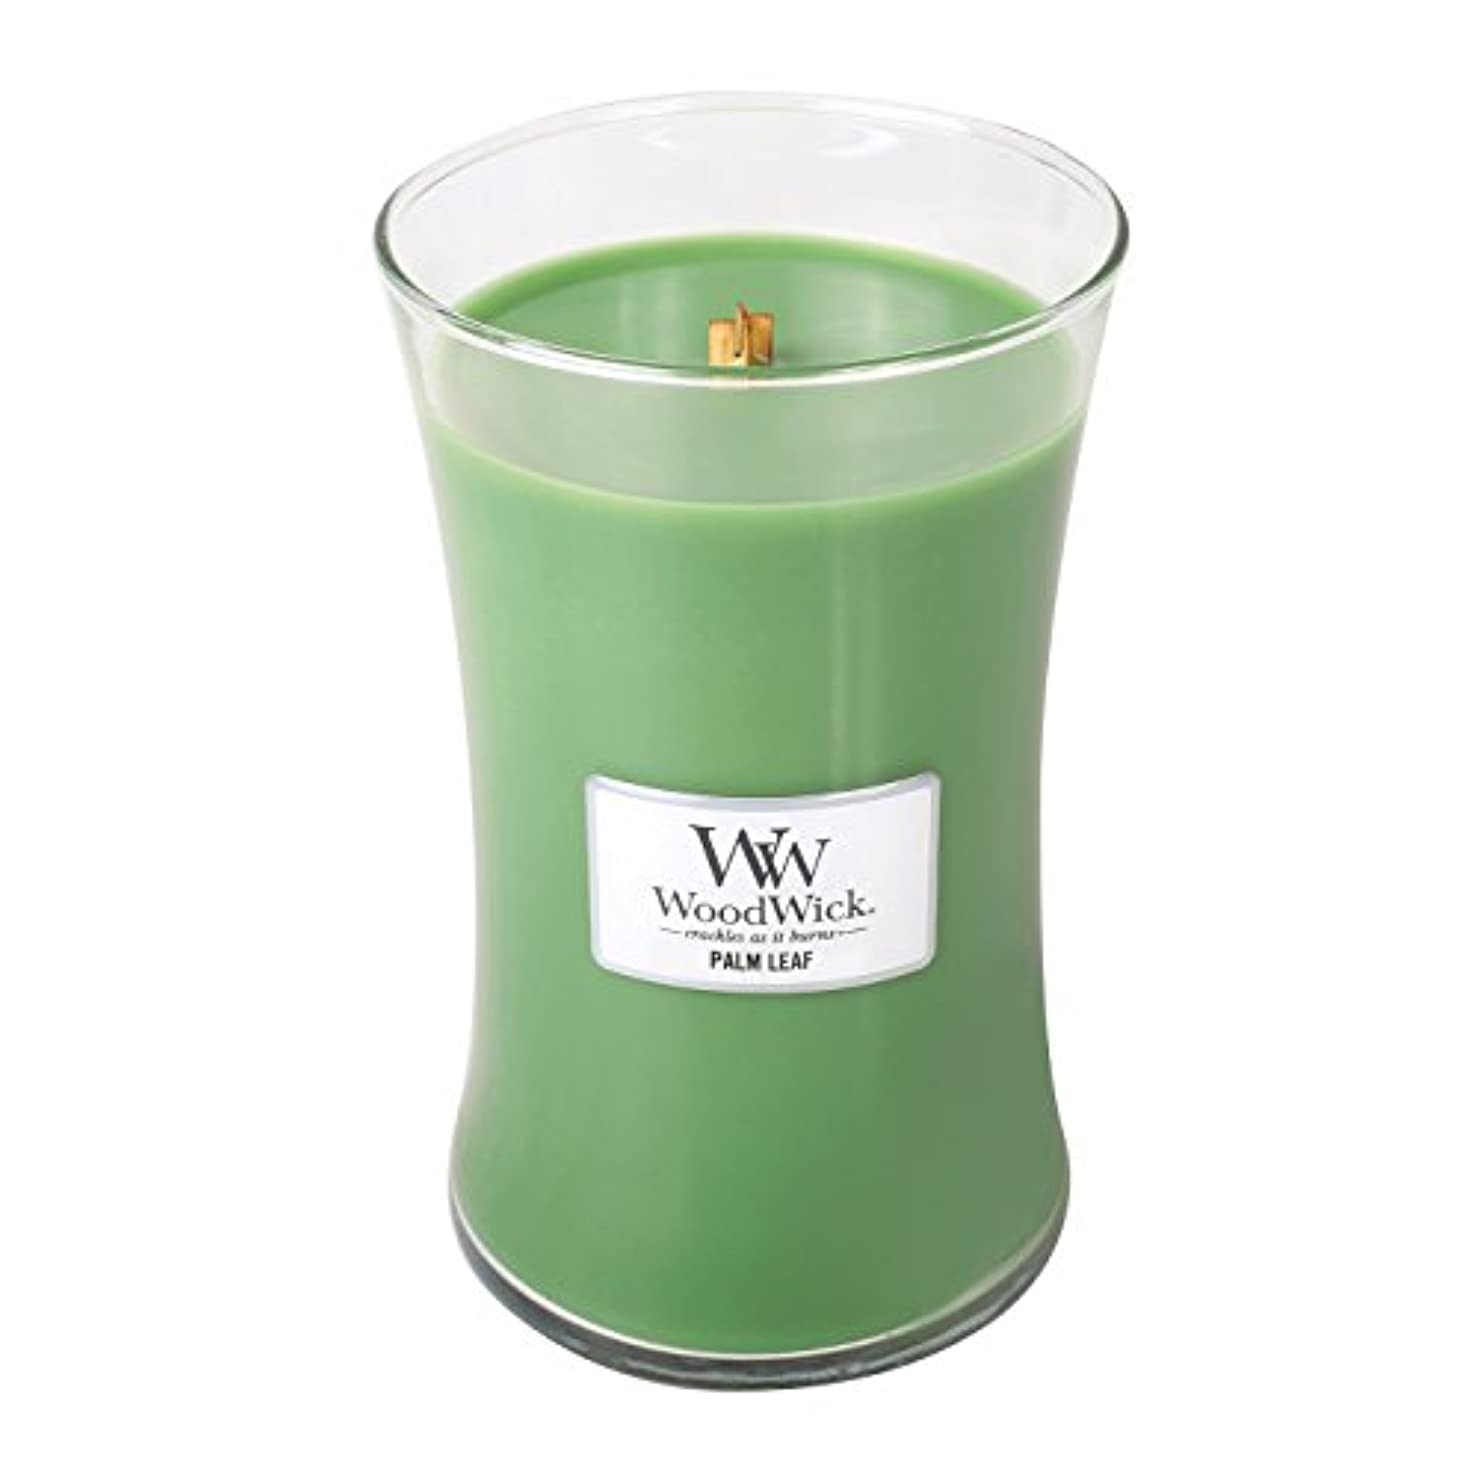 WoodWick PALM LEAF, Highly Scented Candle, Classic Hourglass Jar, Large 18cm, 640ml